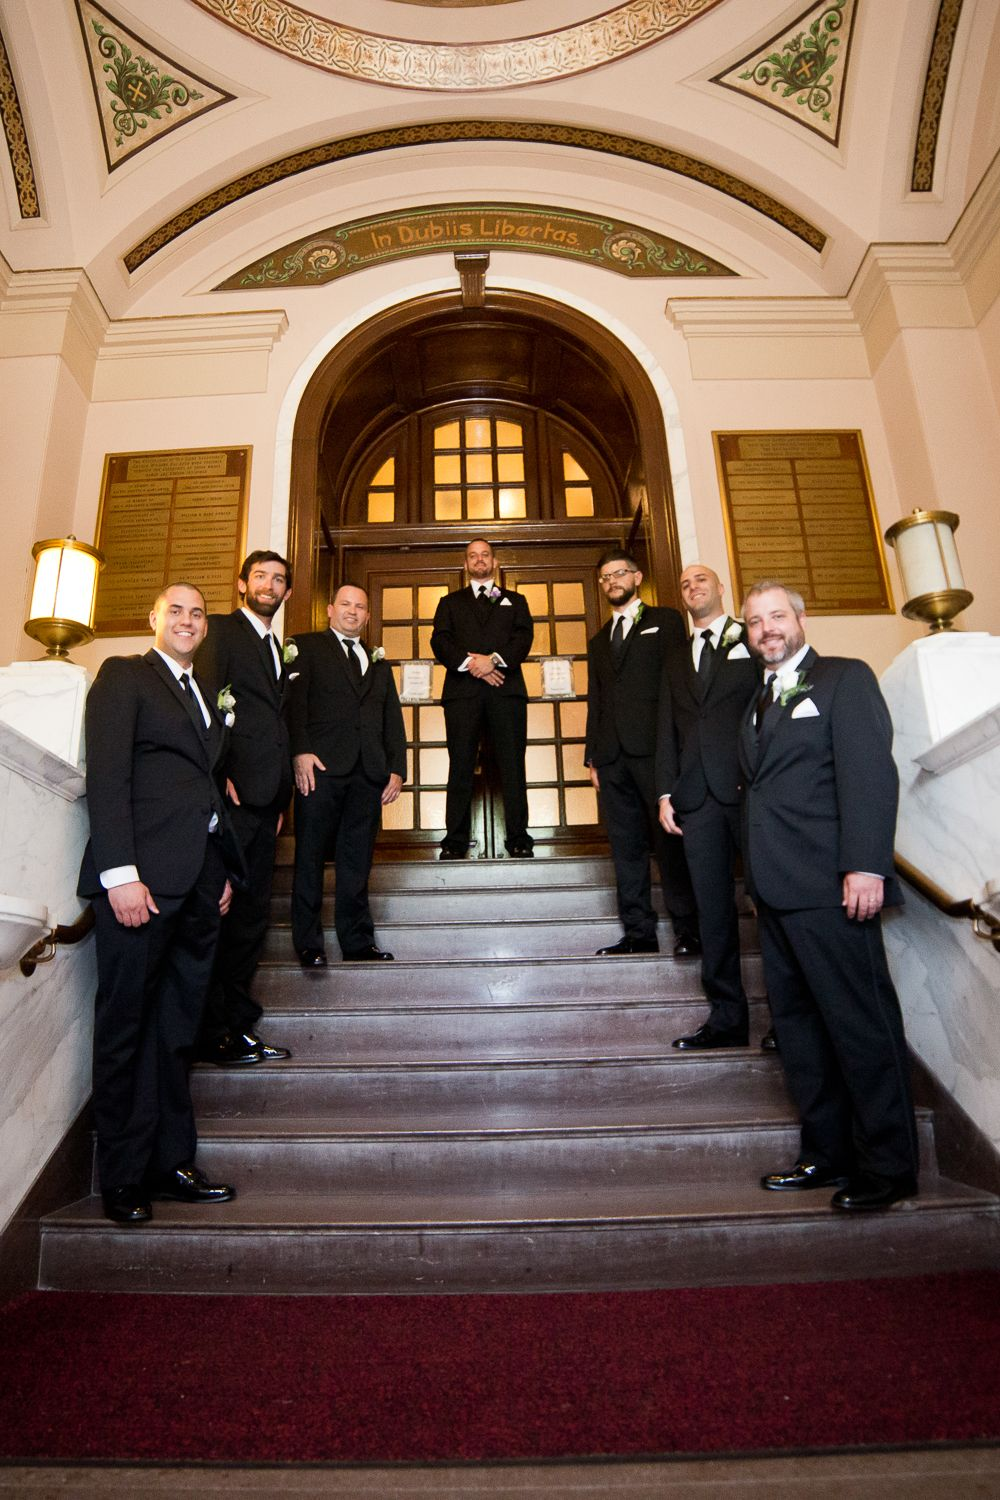 Groomsmen wedding photography by krista patton photography